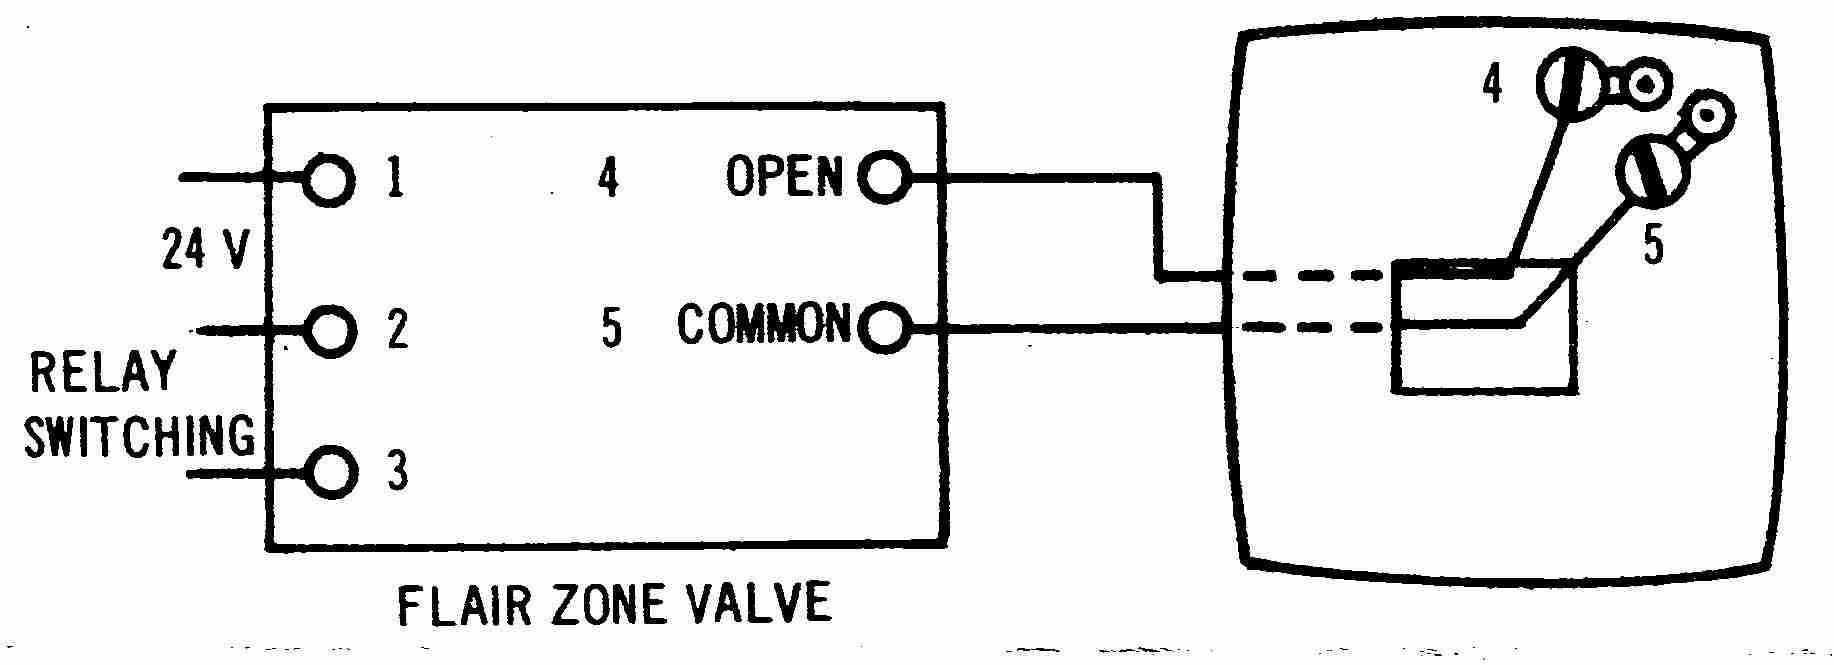 Flair2w_001_DJFc1 room thermostat wiring diagrams for hvac systems air conditioner relay wiring diagram at fashall.co